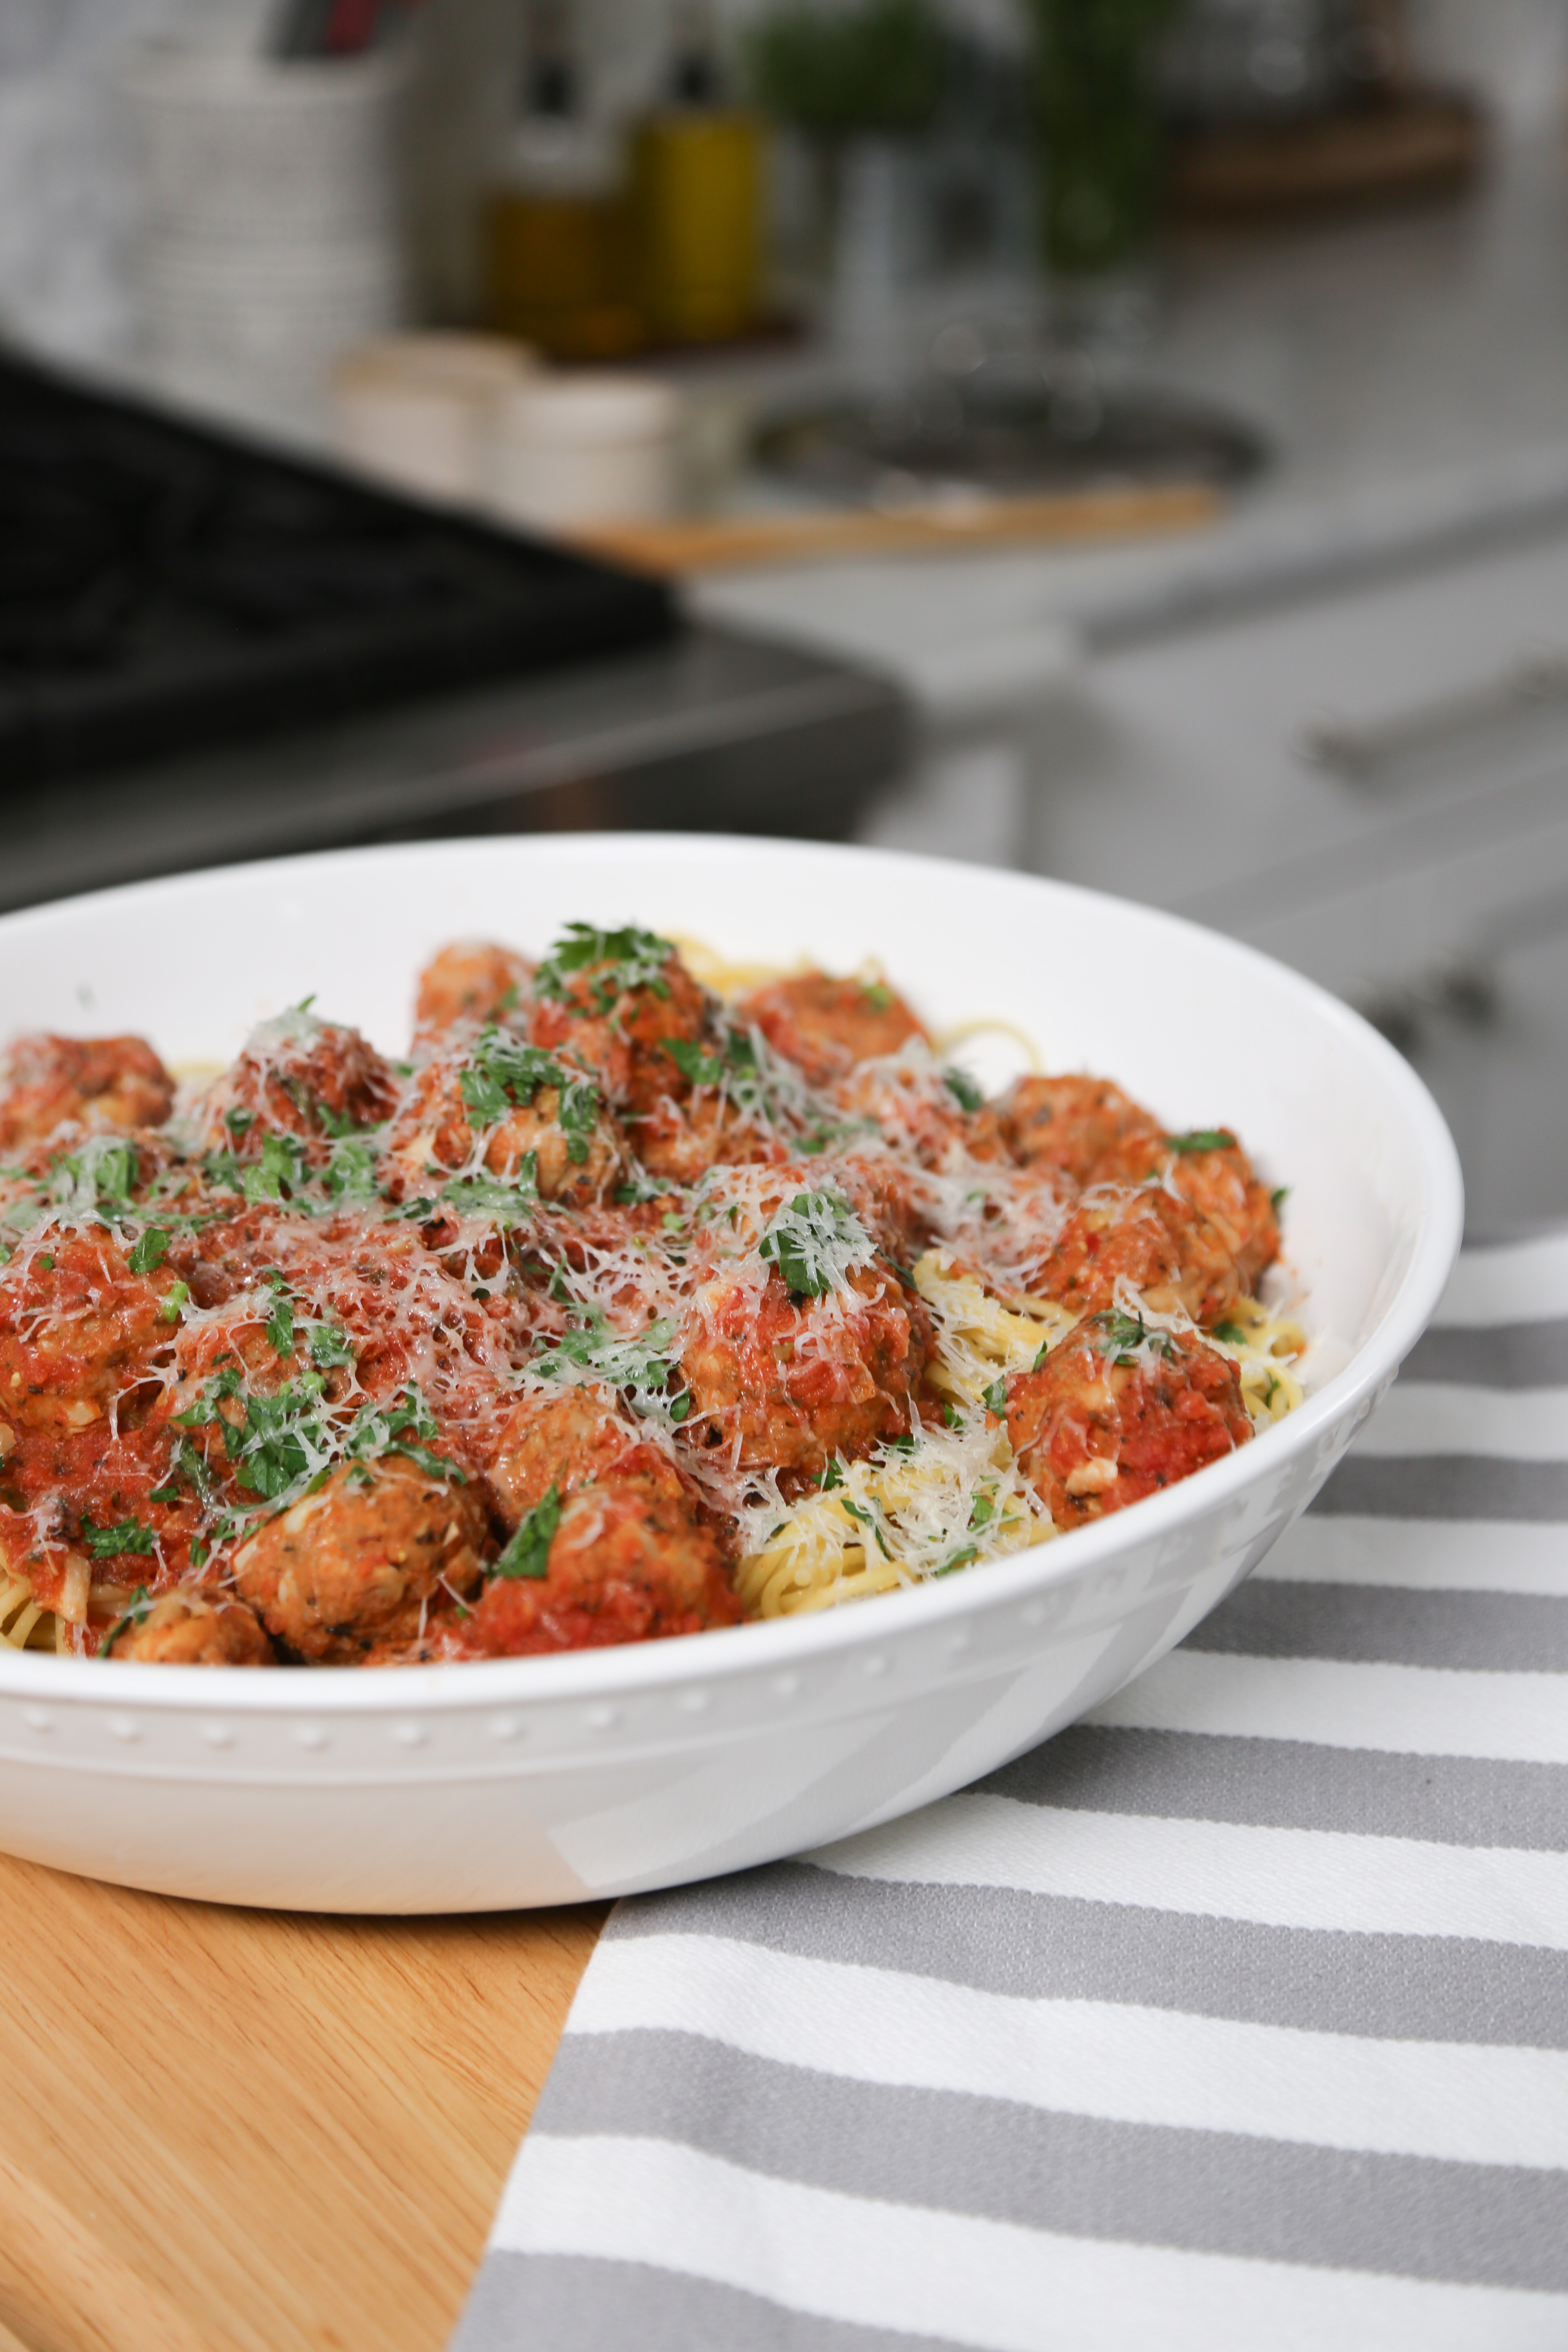 Living By Design 201 Food Photos Pucker Up Pie Spaghetti and Turkey Meatballs